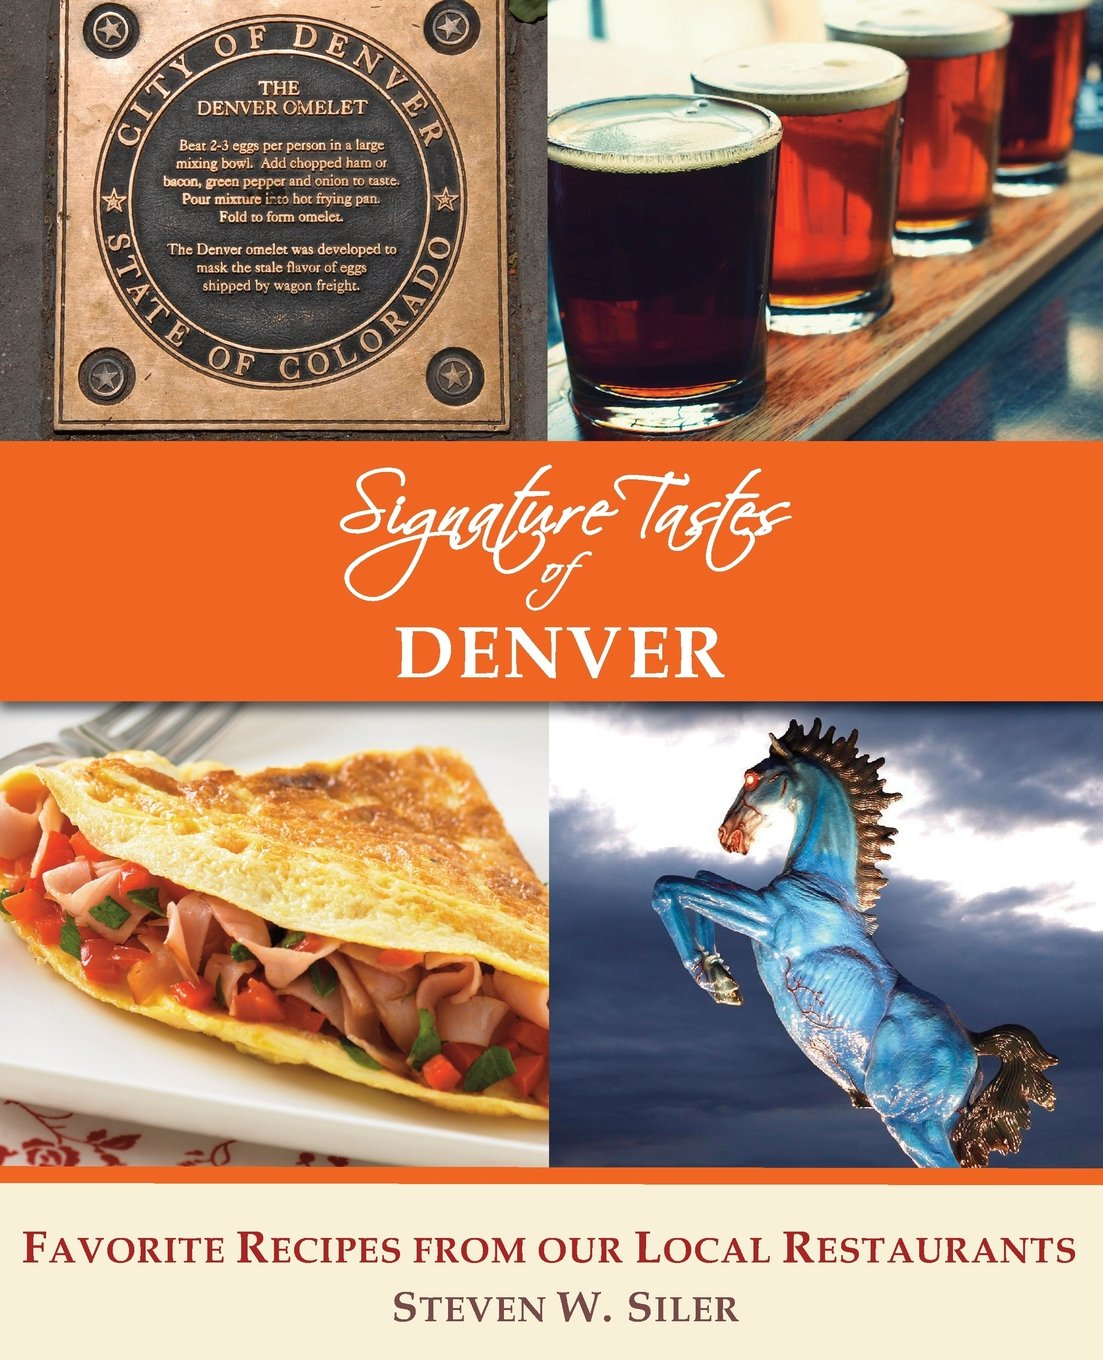 https://www.amazon.com/Signature-Tastes-Denver-Favorite-Restaurants/dp/150560432X/ref=sr_1_1?ie=UTF8&qid=1475184923&sr=8-1&keywords=9781505604320